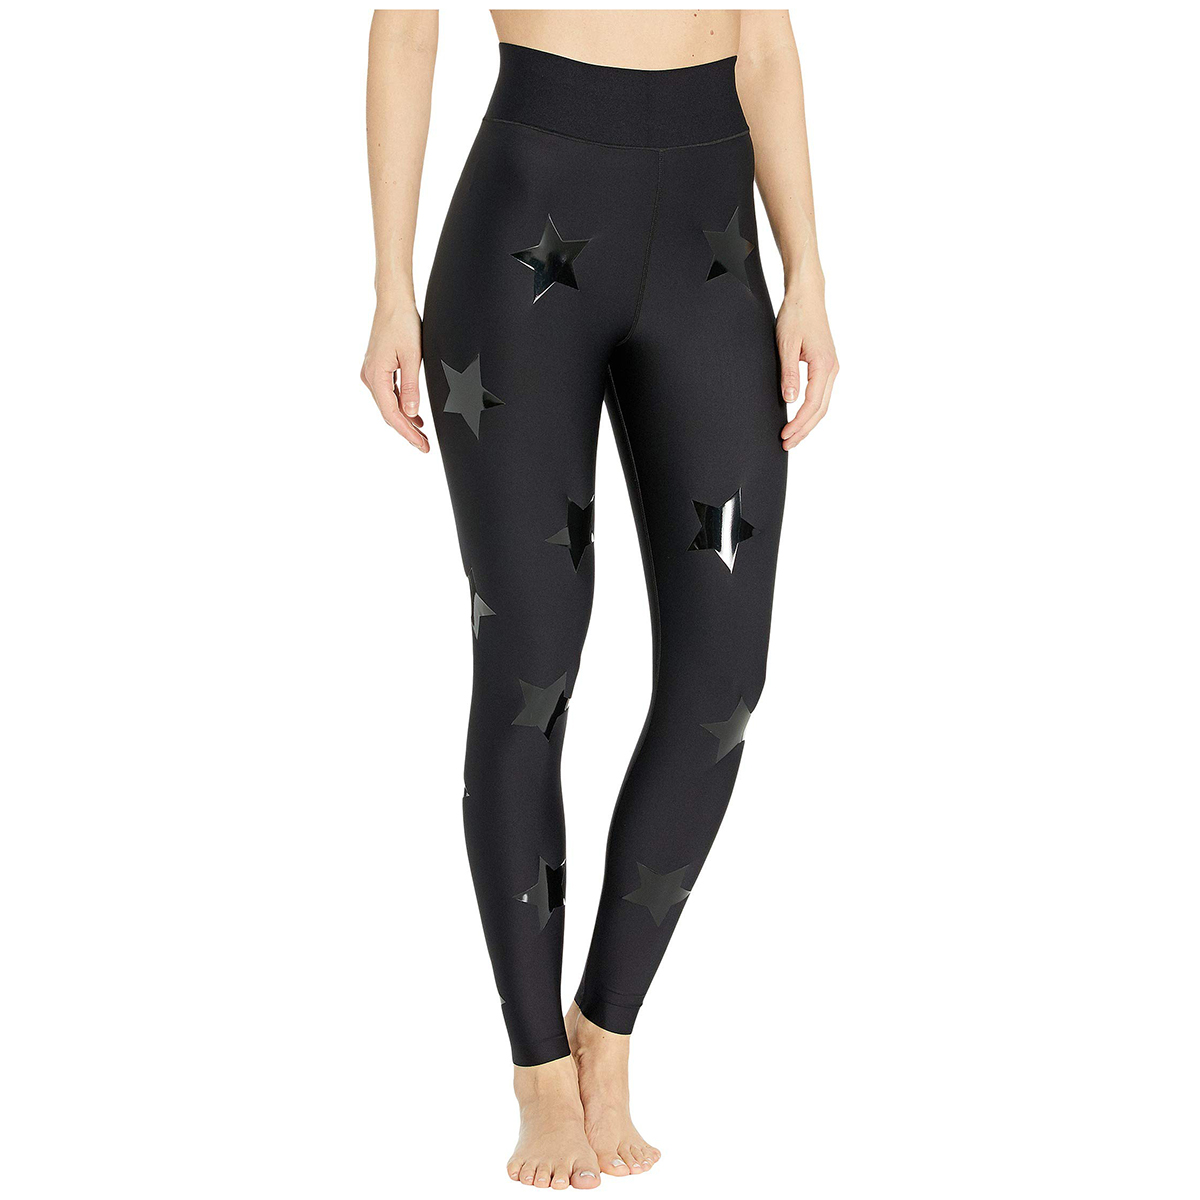 Zappos Ultracor Ultra High Lux Knockout Leggings